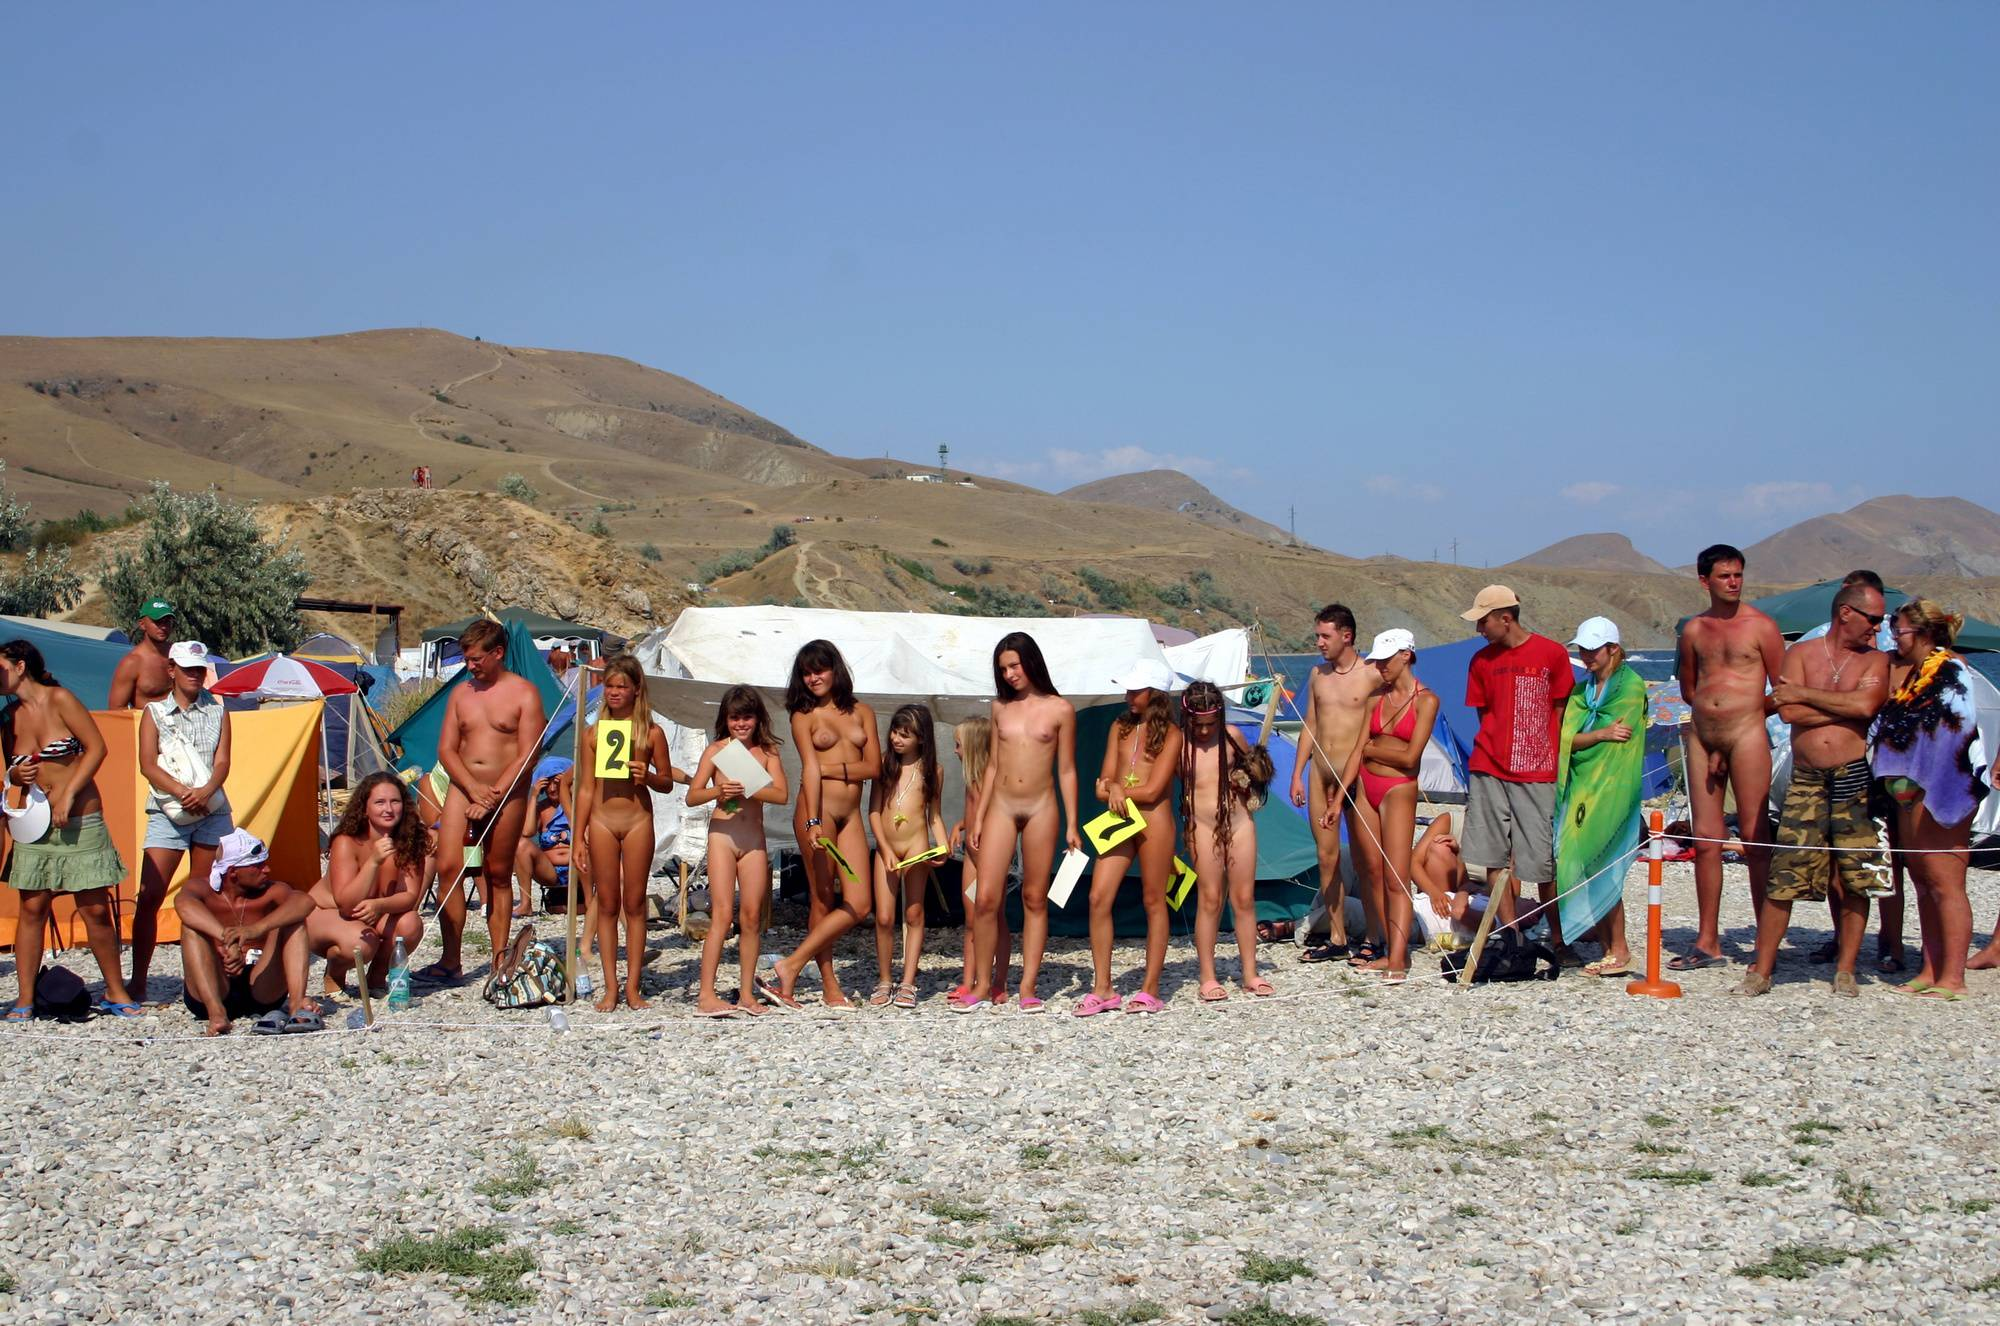 Pure Nudism Photos Contestant Cheerful Walk - 1